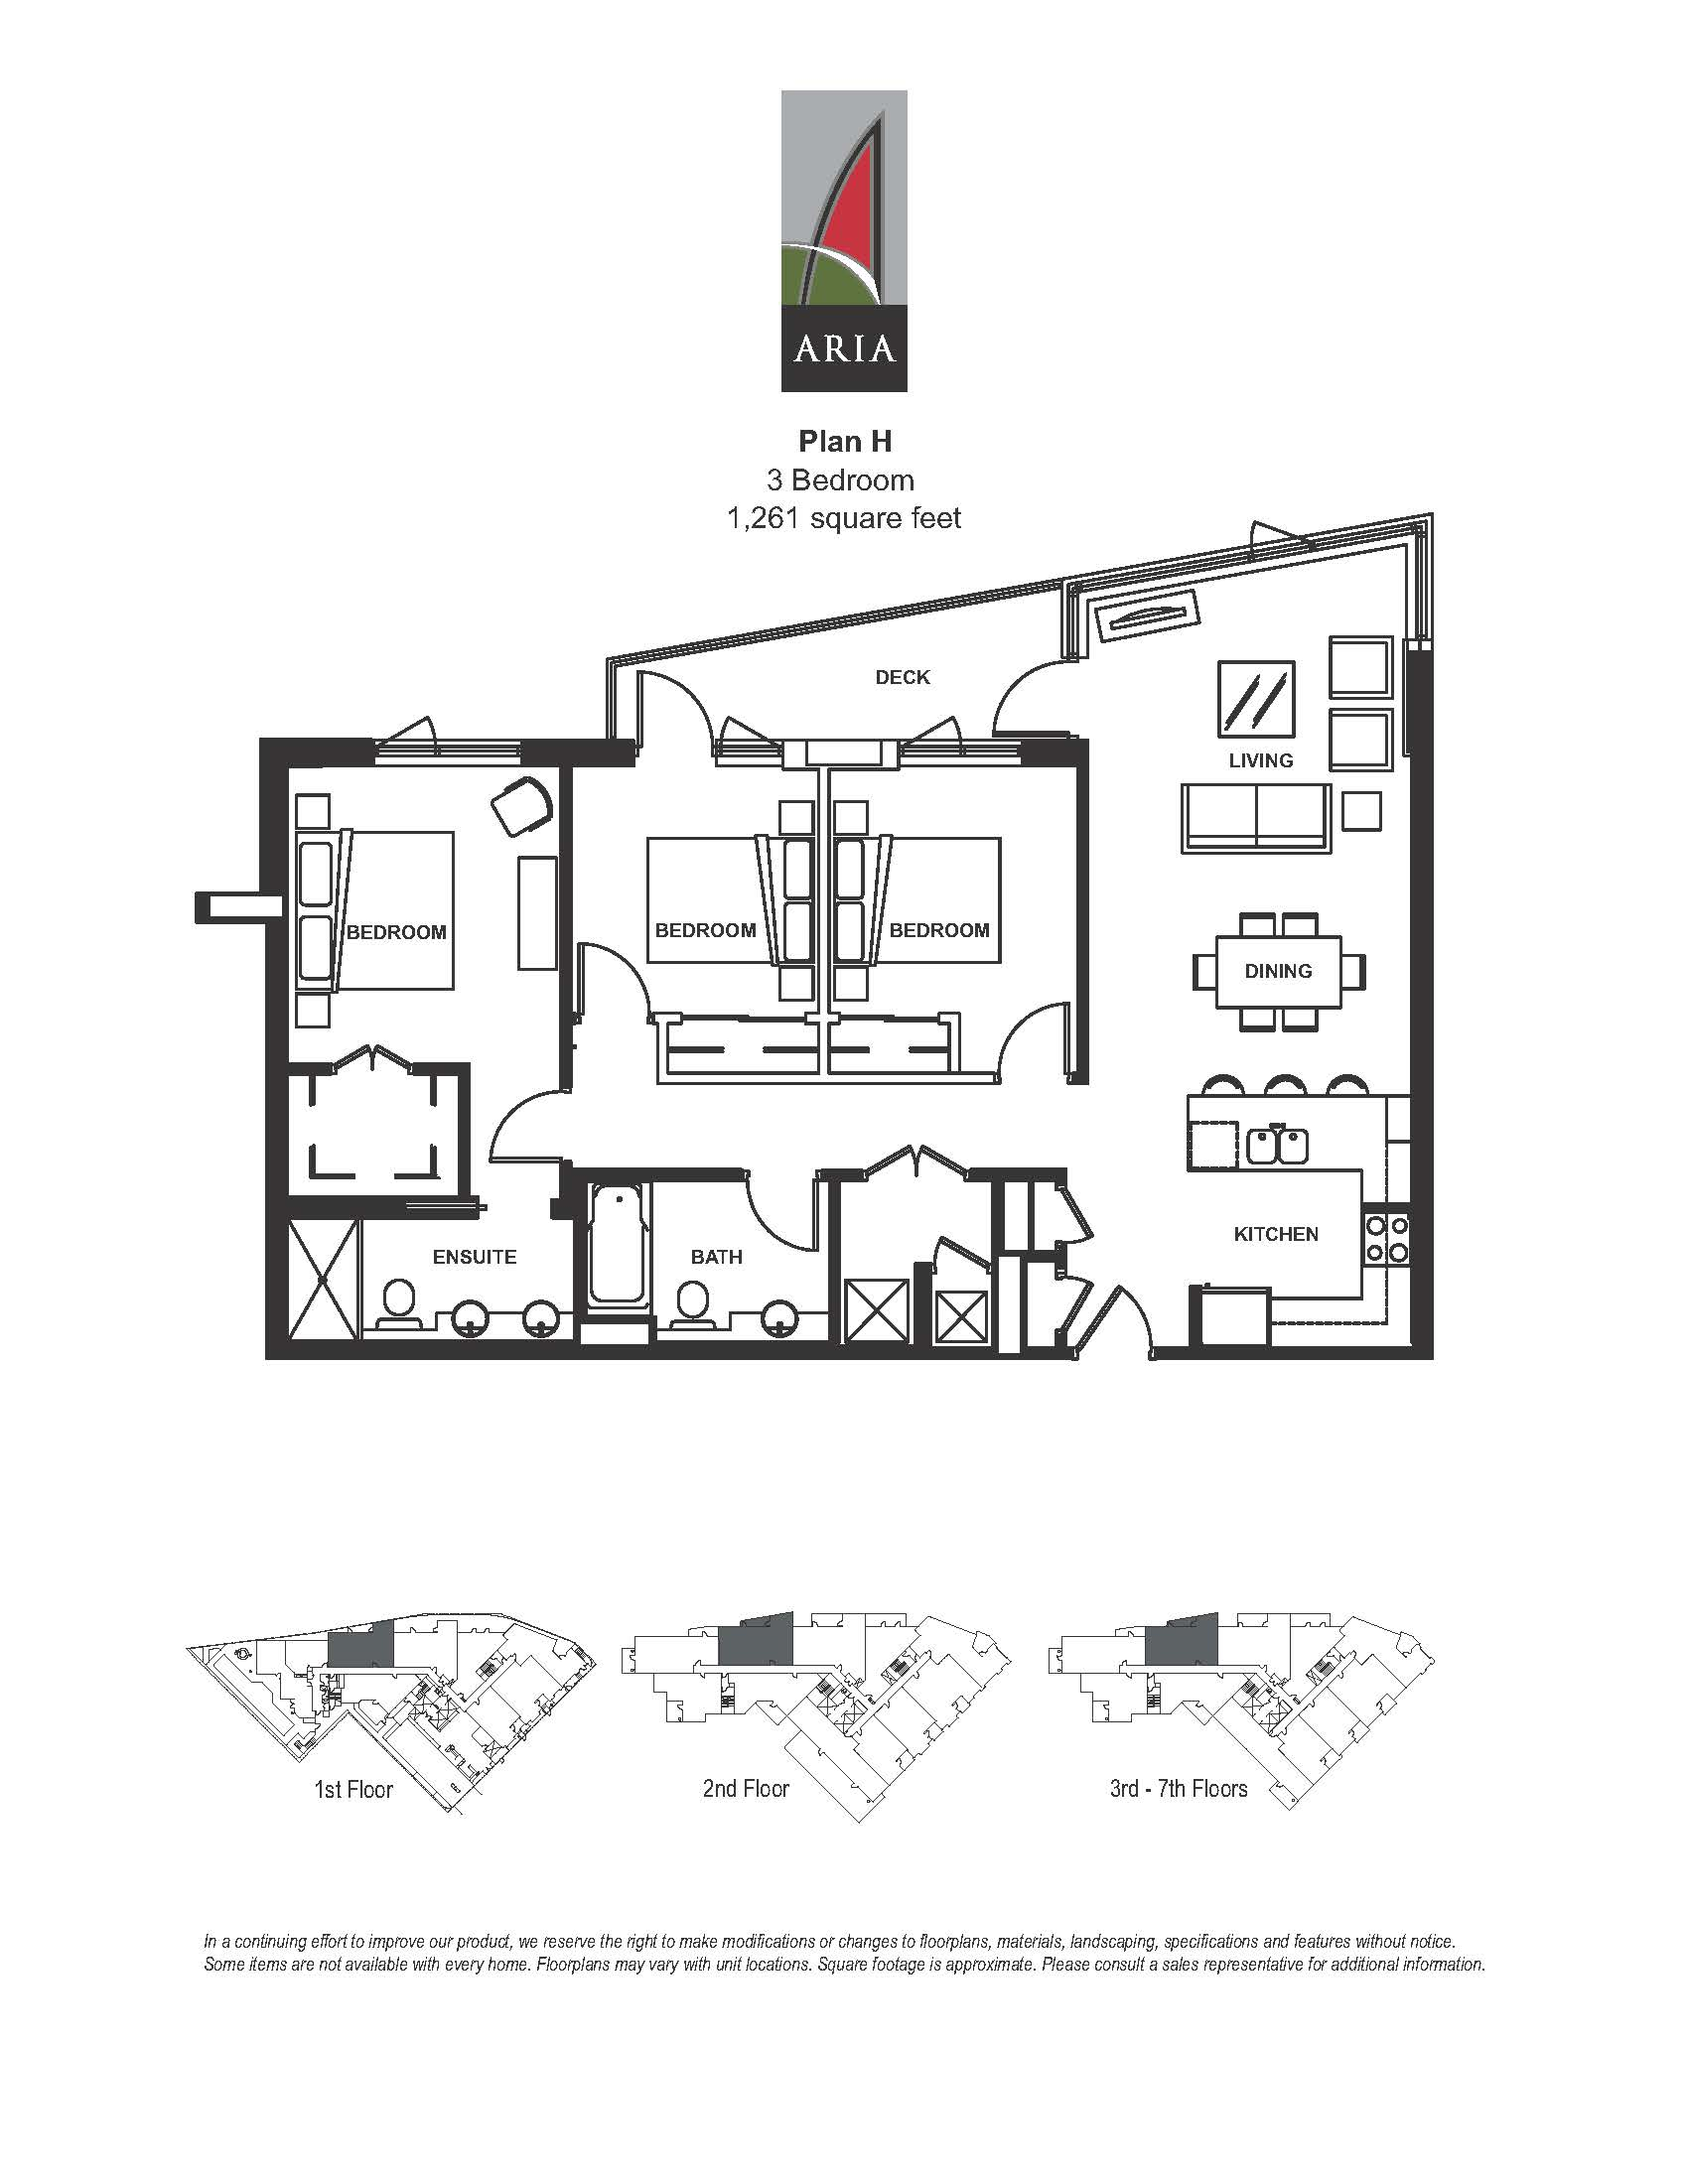 Aria 3 Bedroom - Plan H